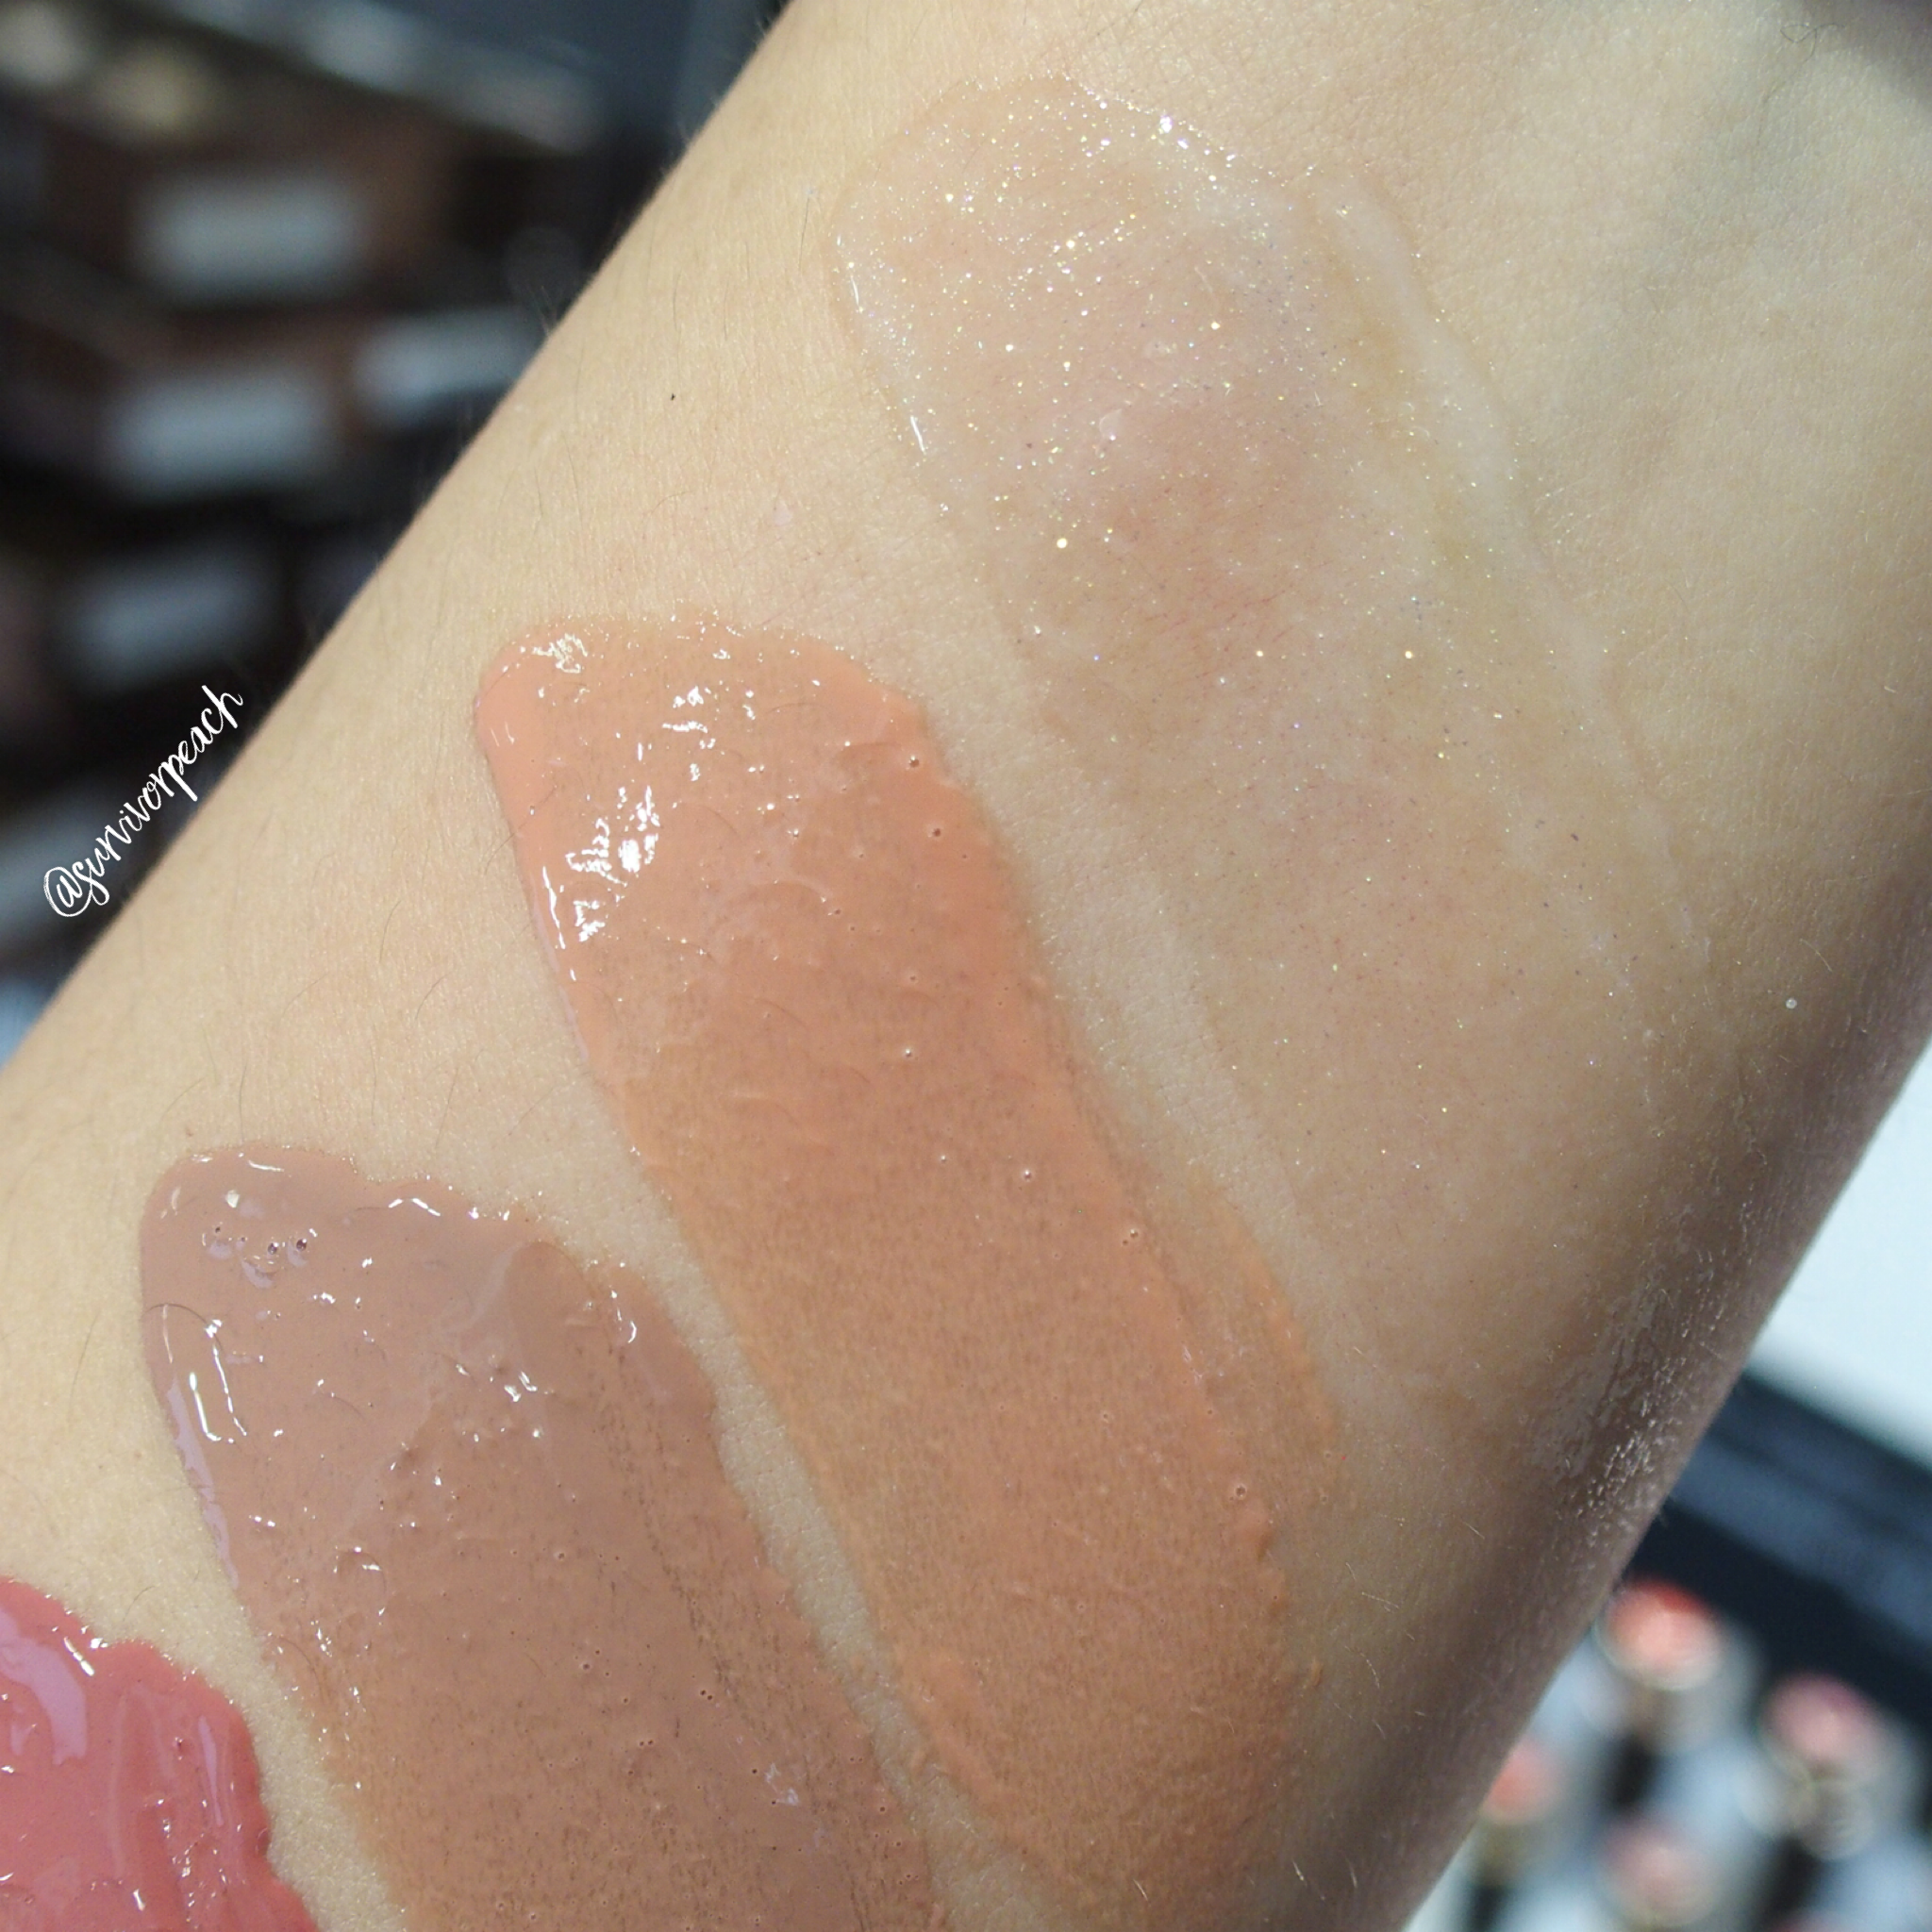 Swatches of the Hourglass Unreal High Shine Voluming Lipgloss: Halo, Child, Provoke